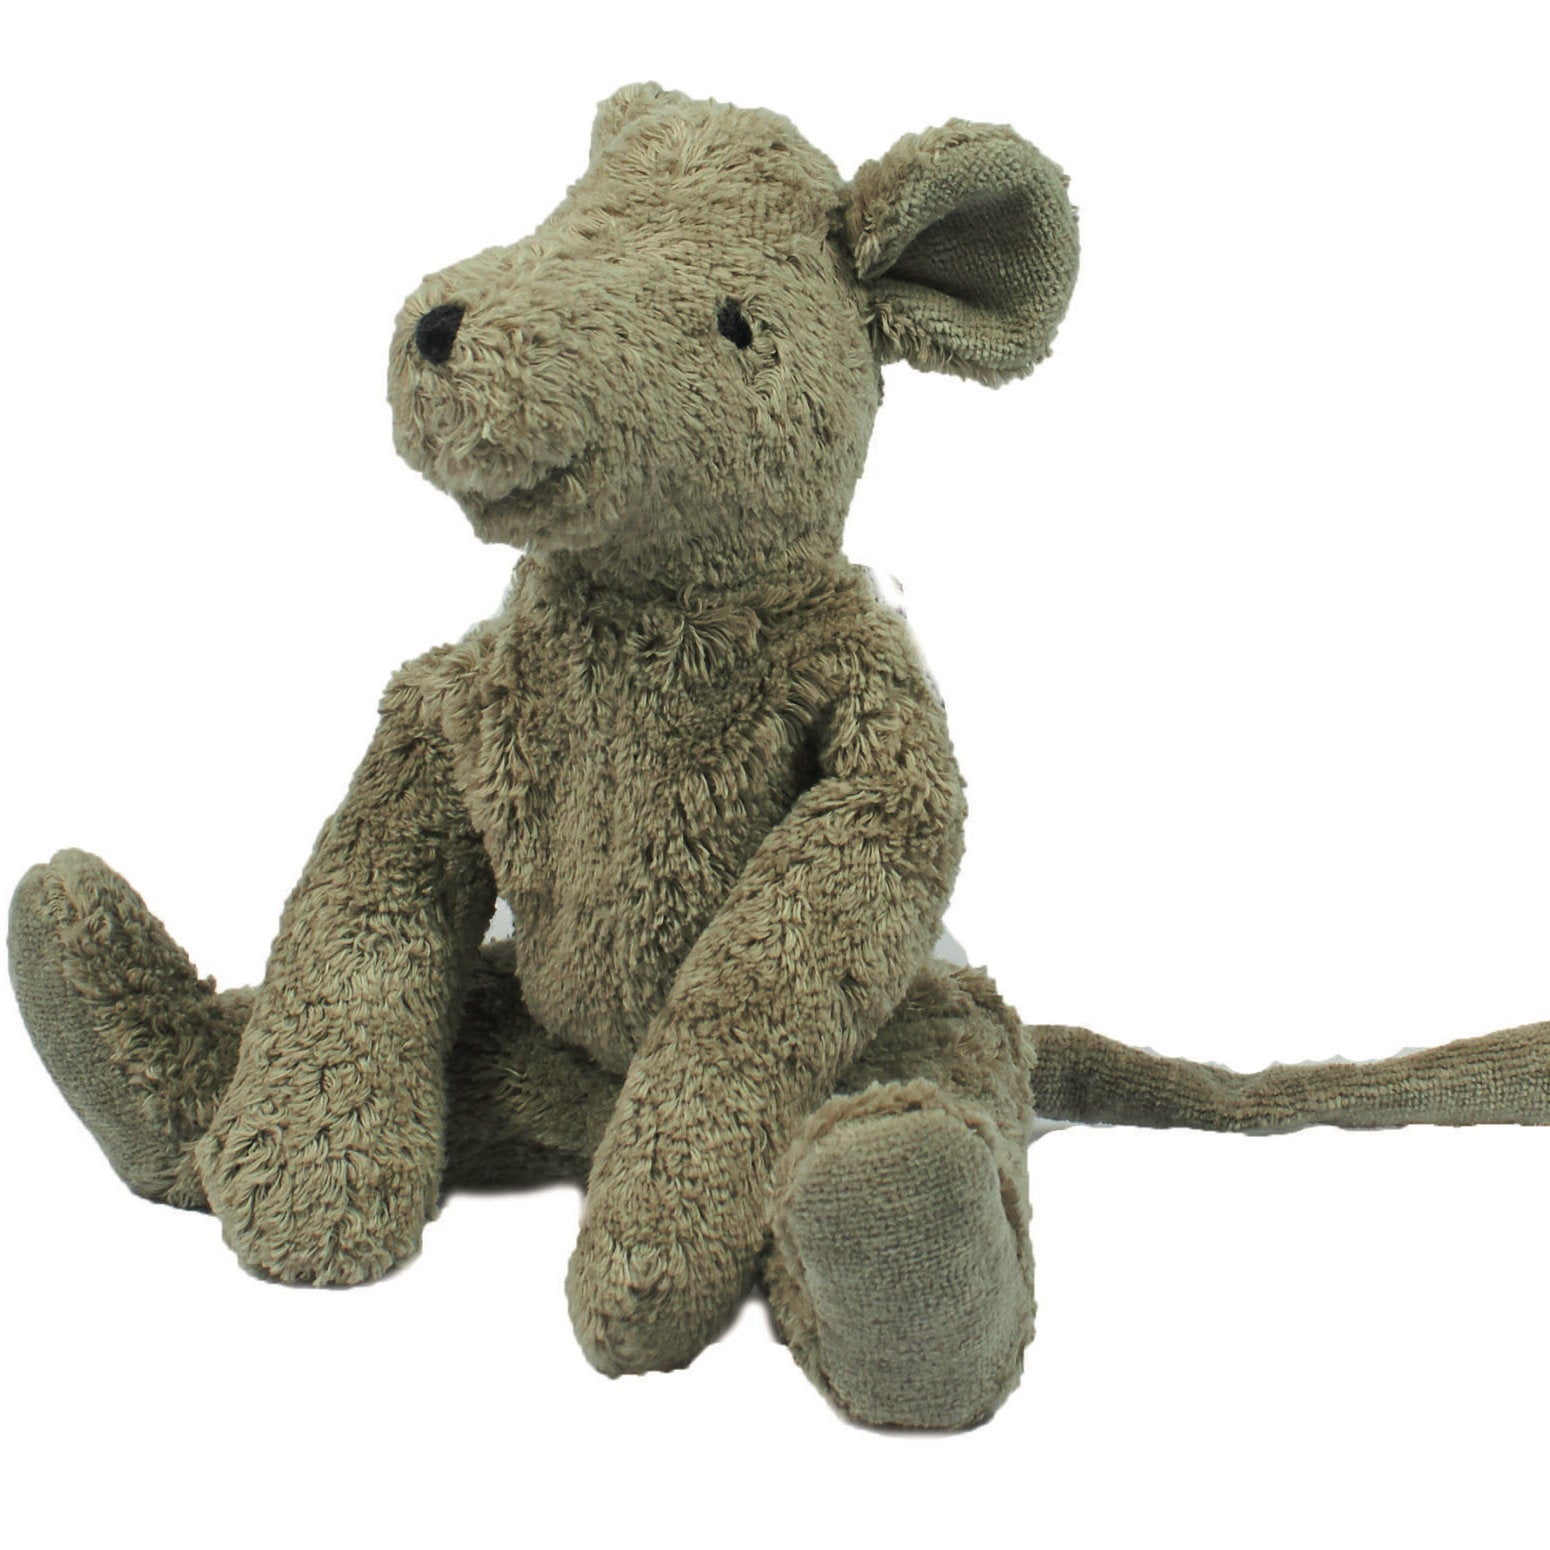 Senger organic cotton stuffed toy mouse in grey